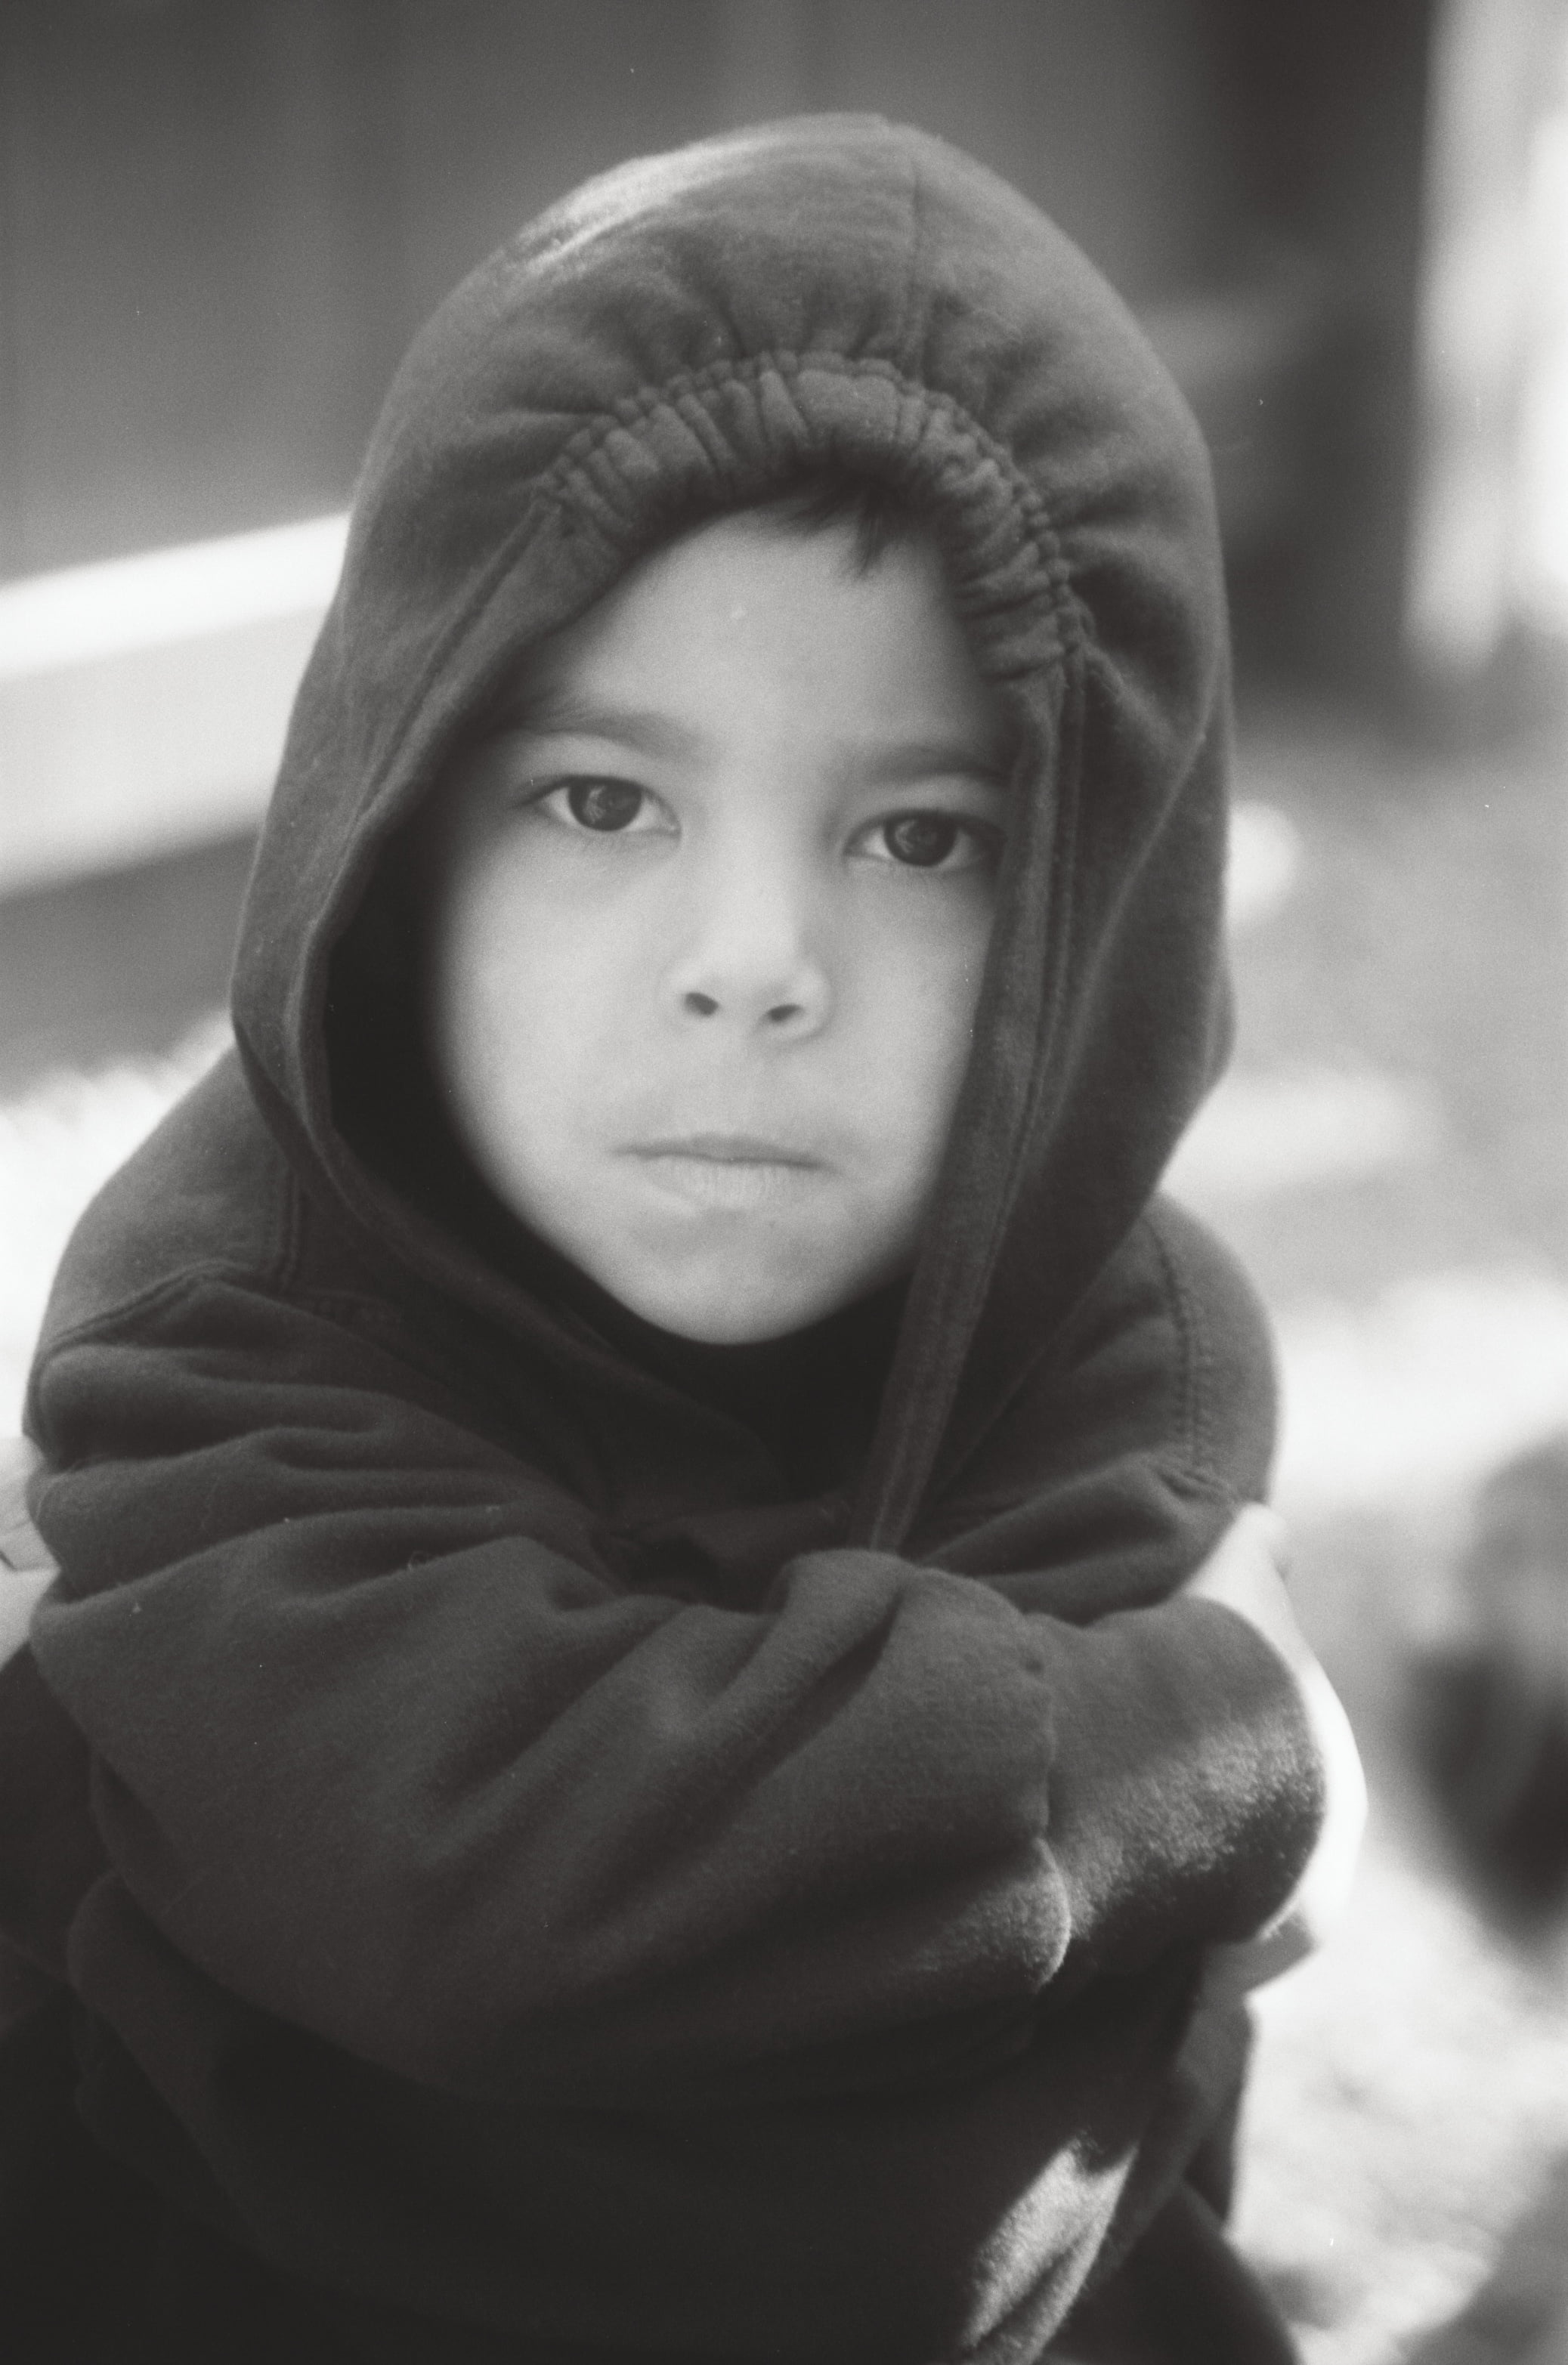 black and white photo of little boy in a hooded sweatshirt